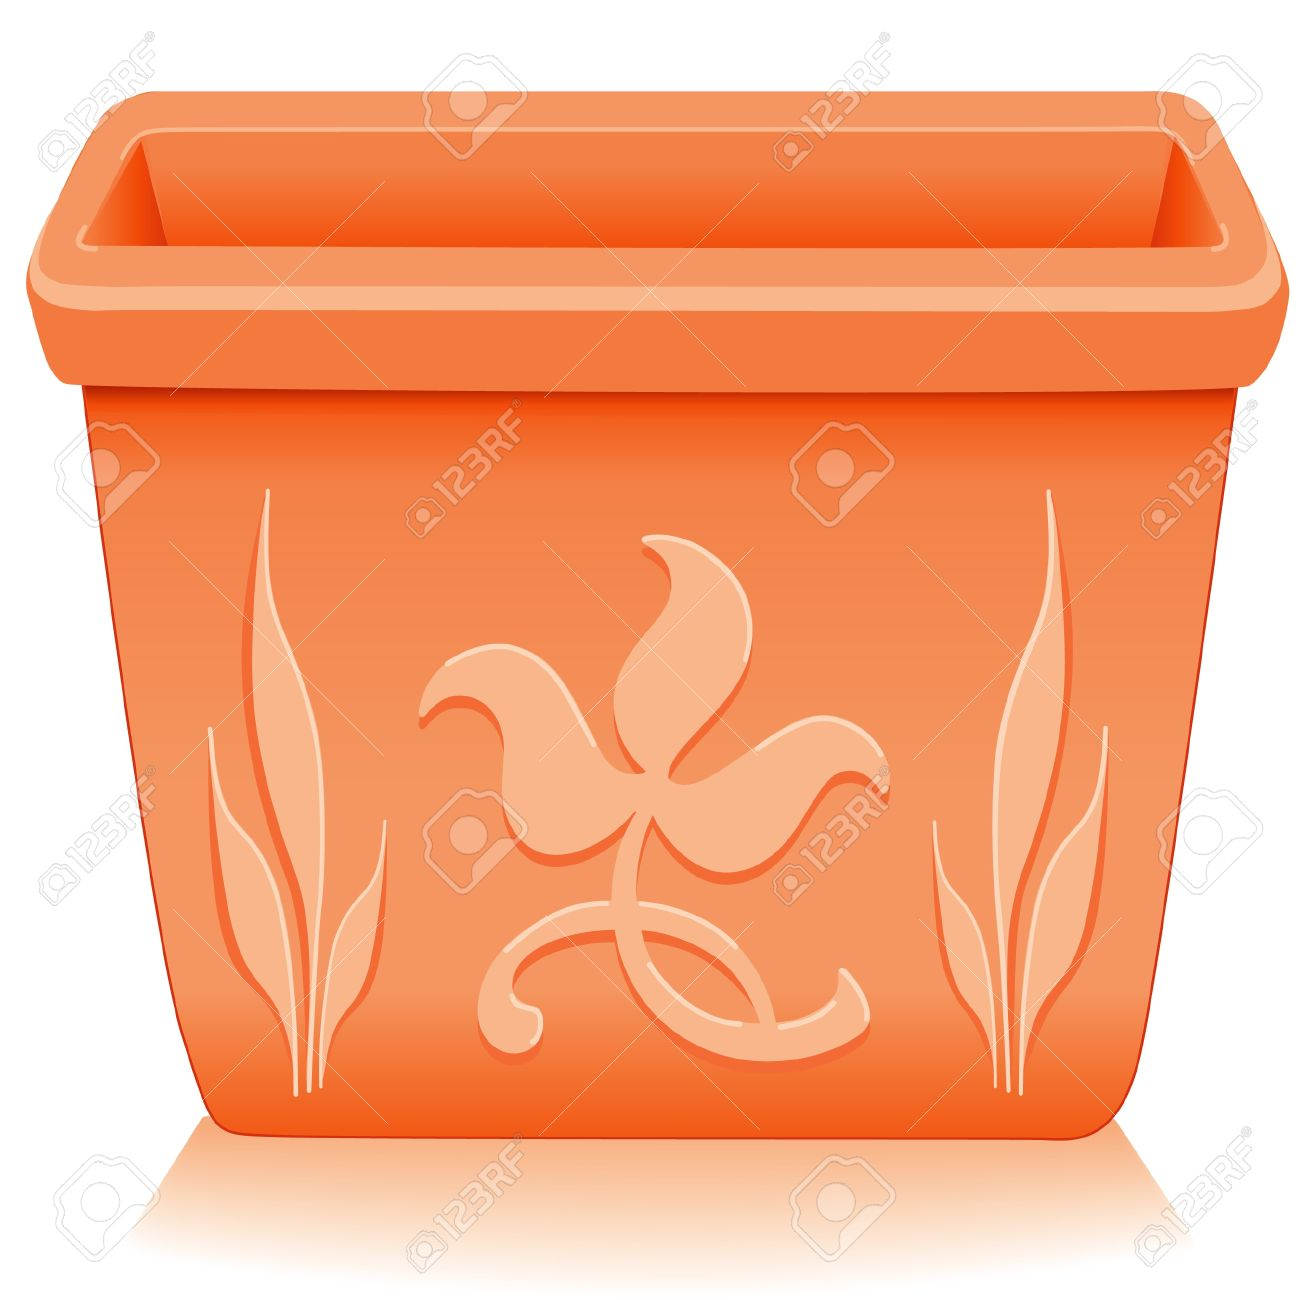 Terracotta flower pots clipart - Clipground